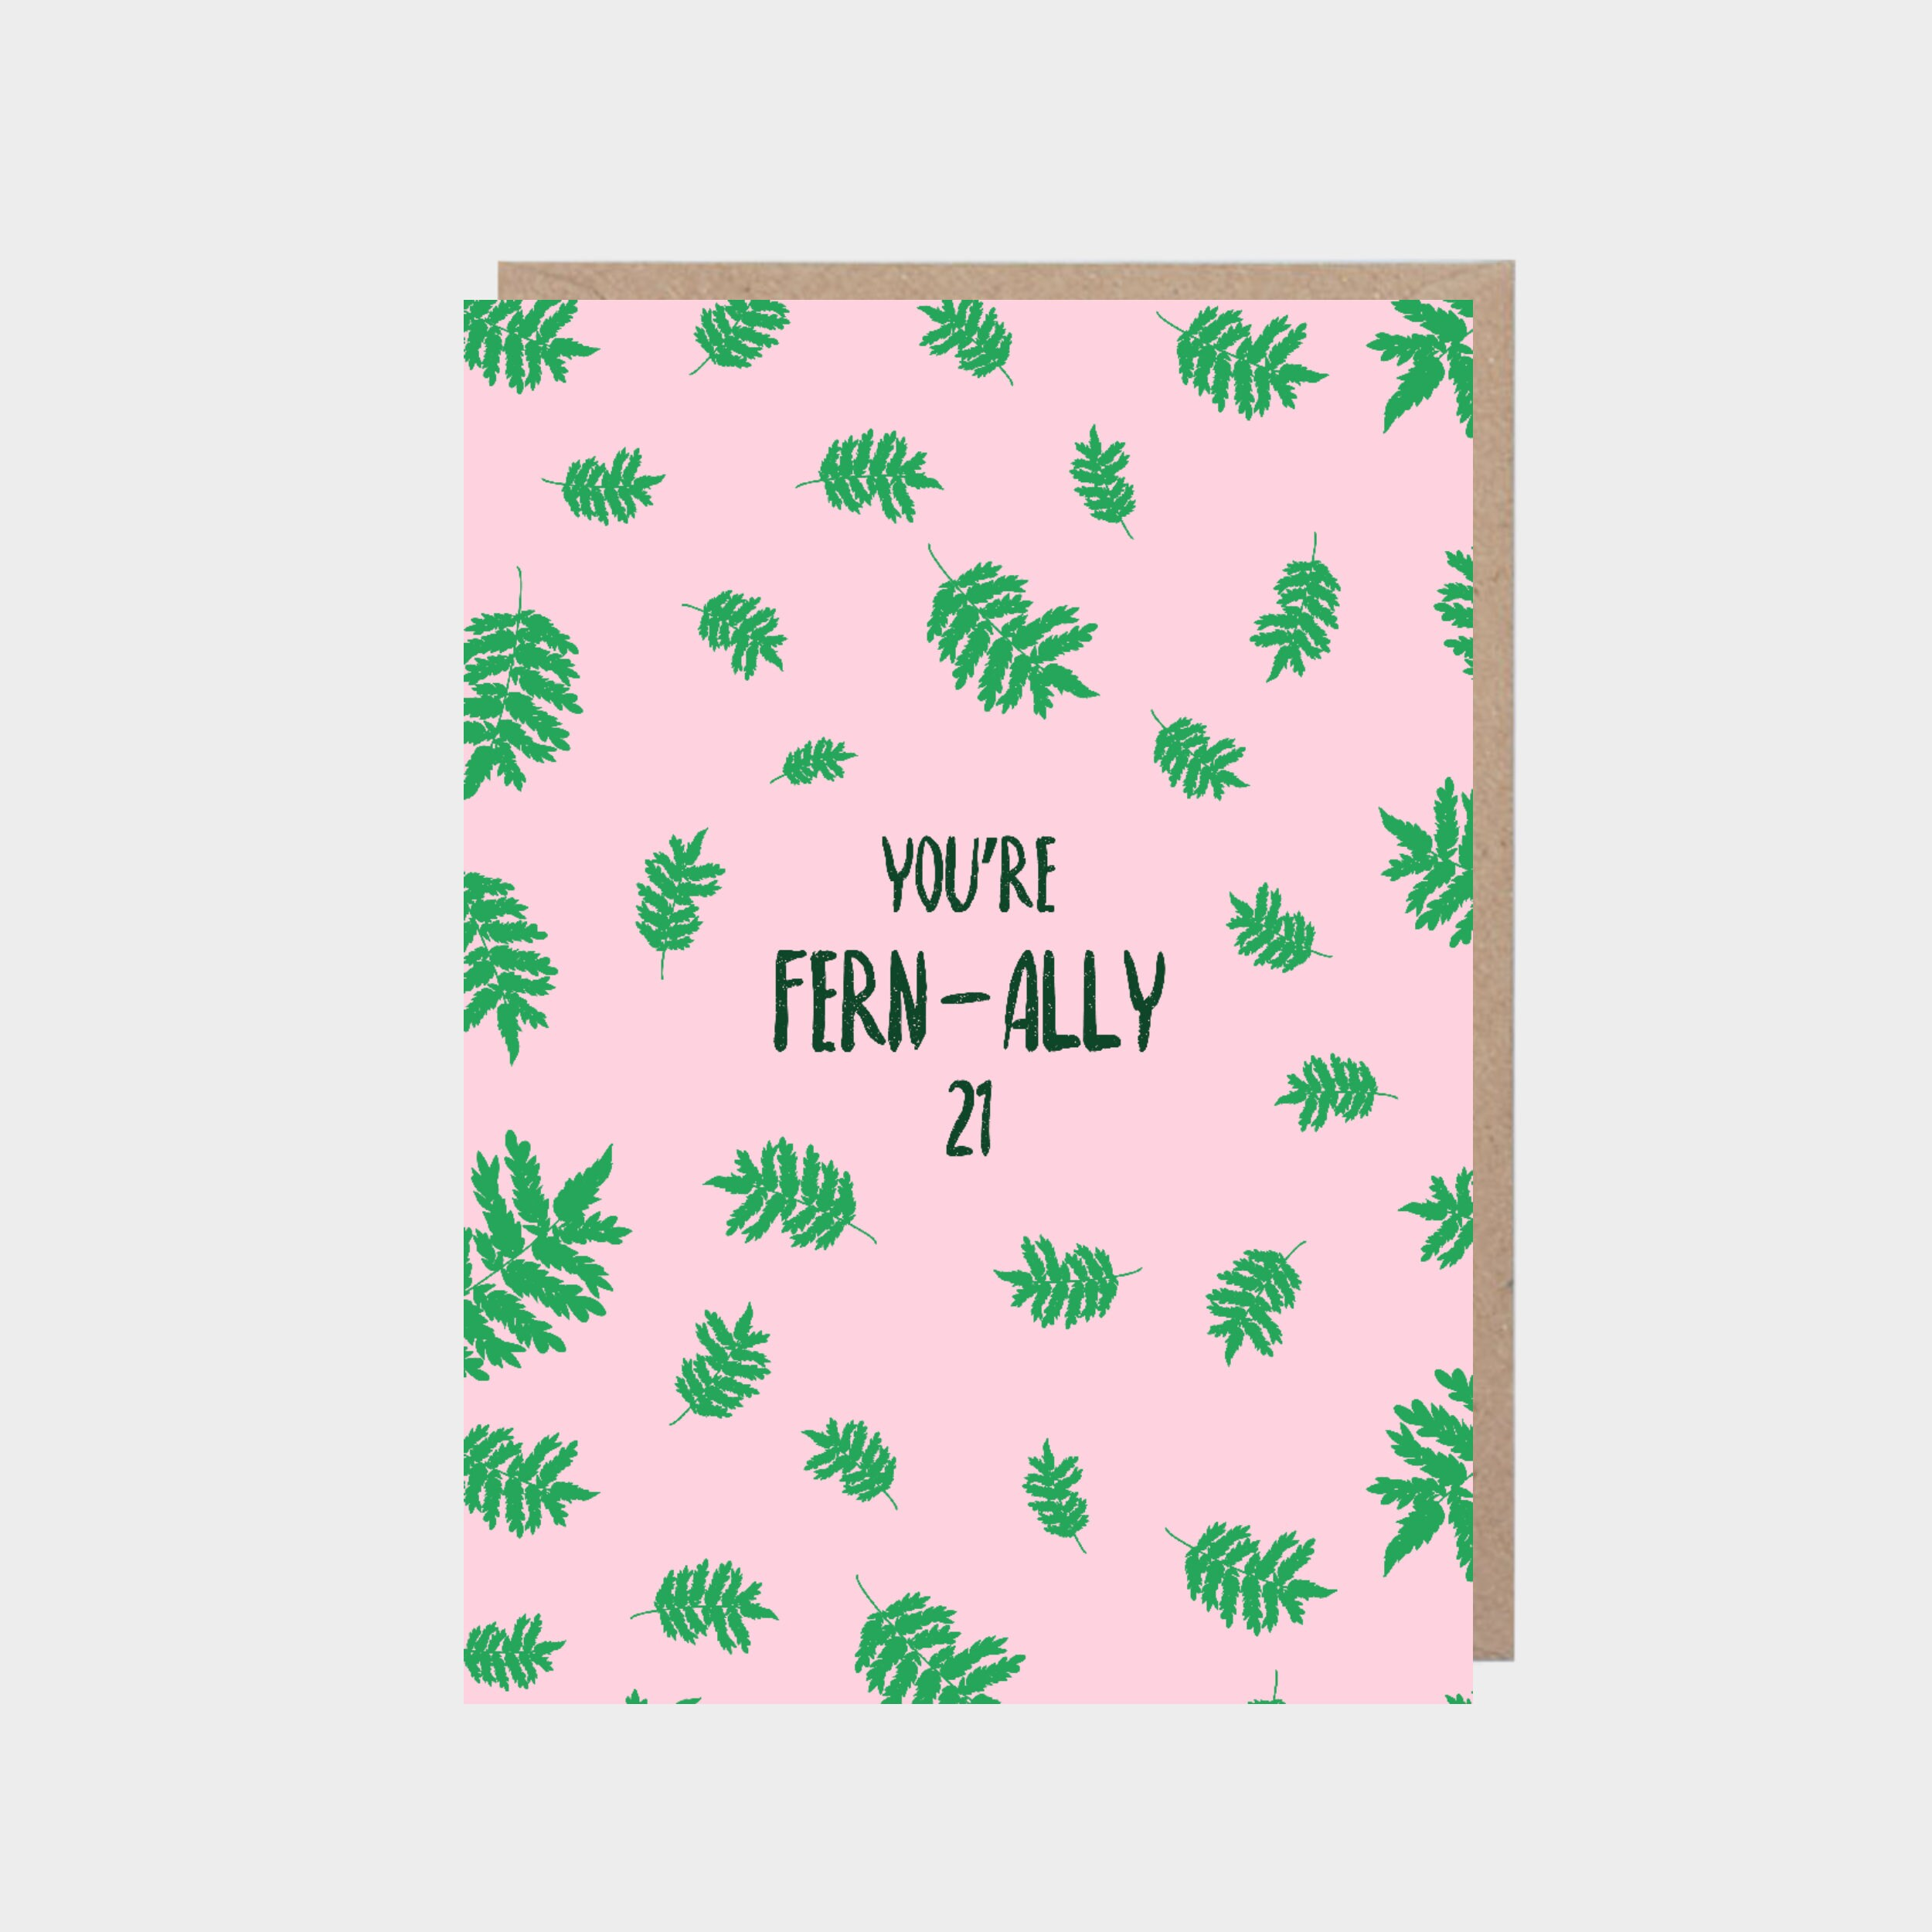 Standing light pink card with illustrated fern leaves, with a brown kraft envelope